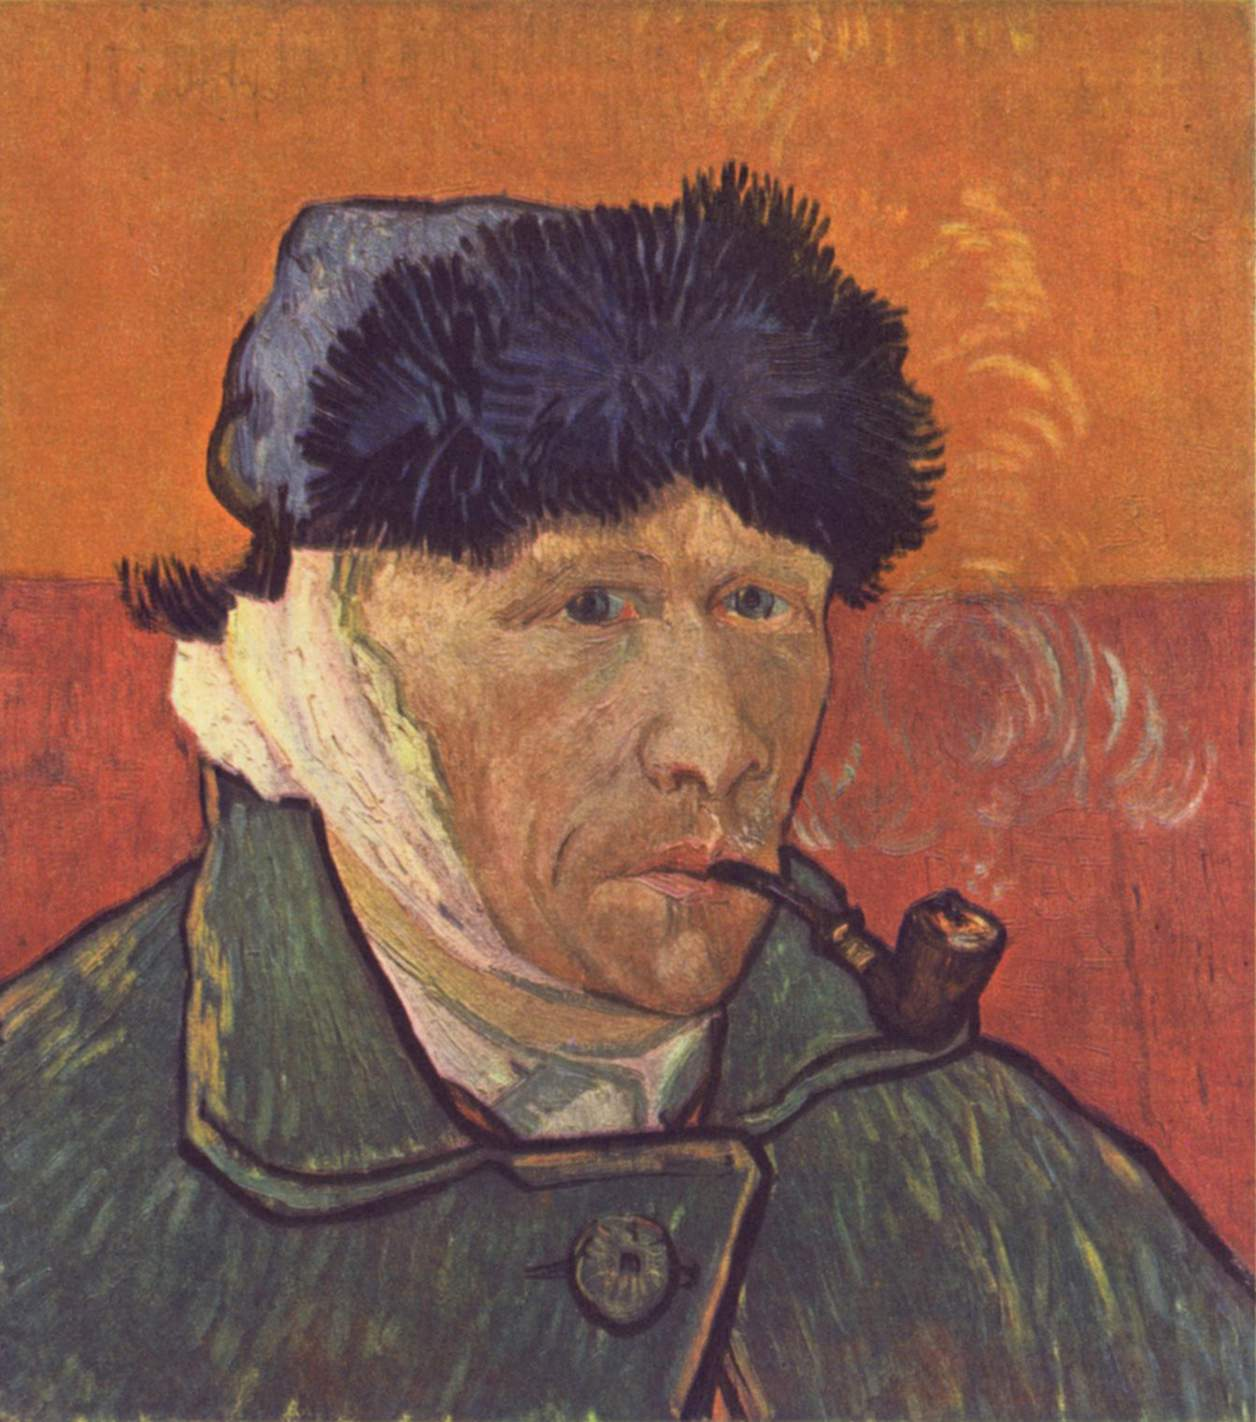 Self-portrait of Vincent Van Gogh, after he had cut off his right ear